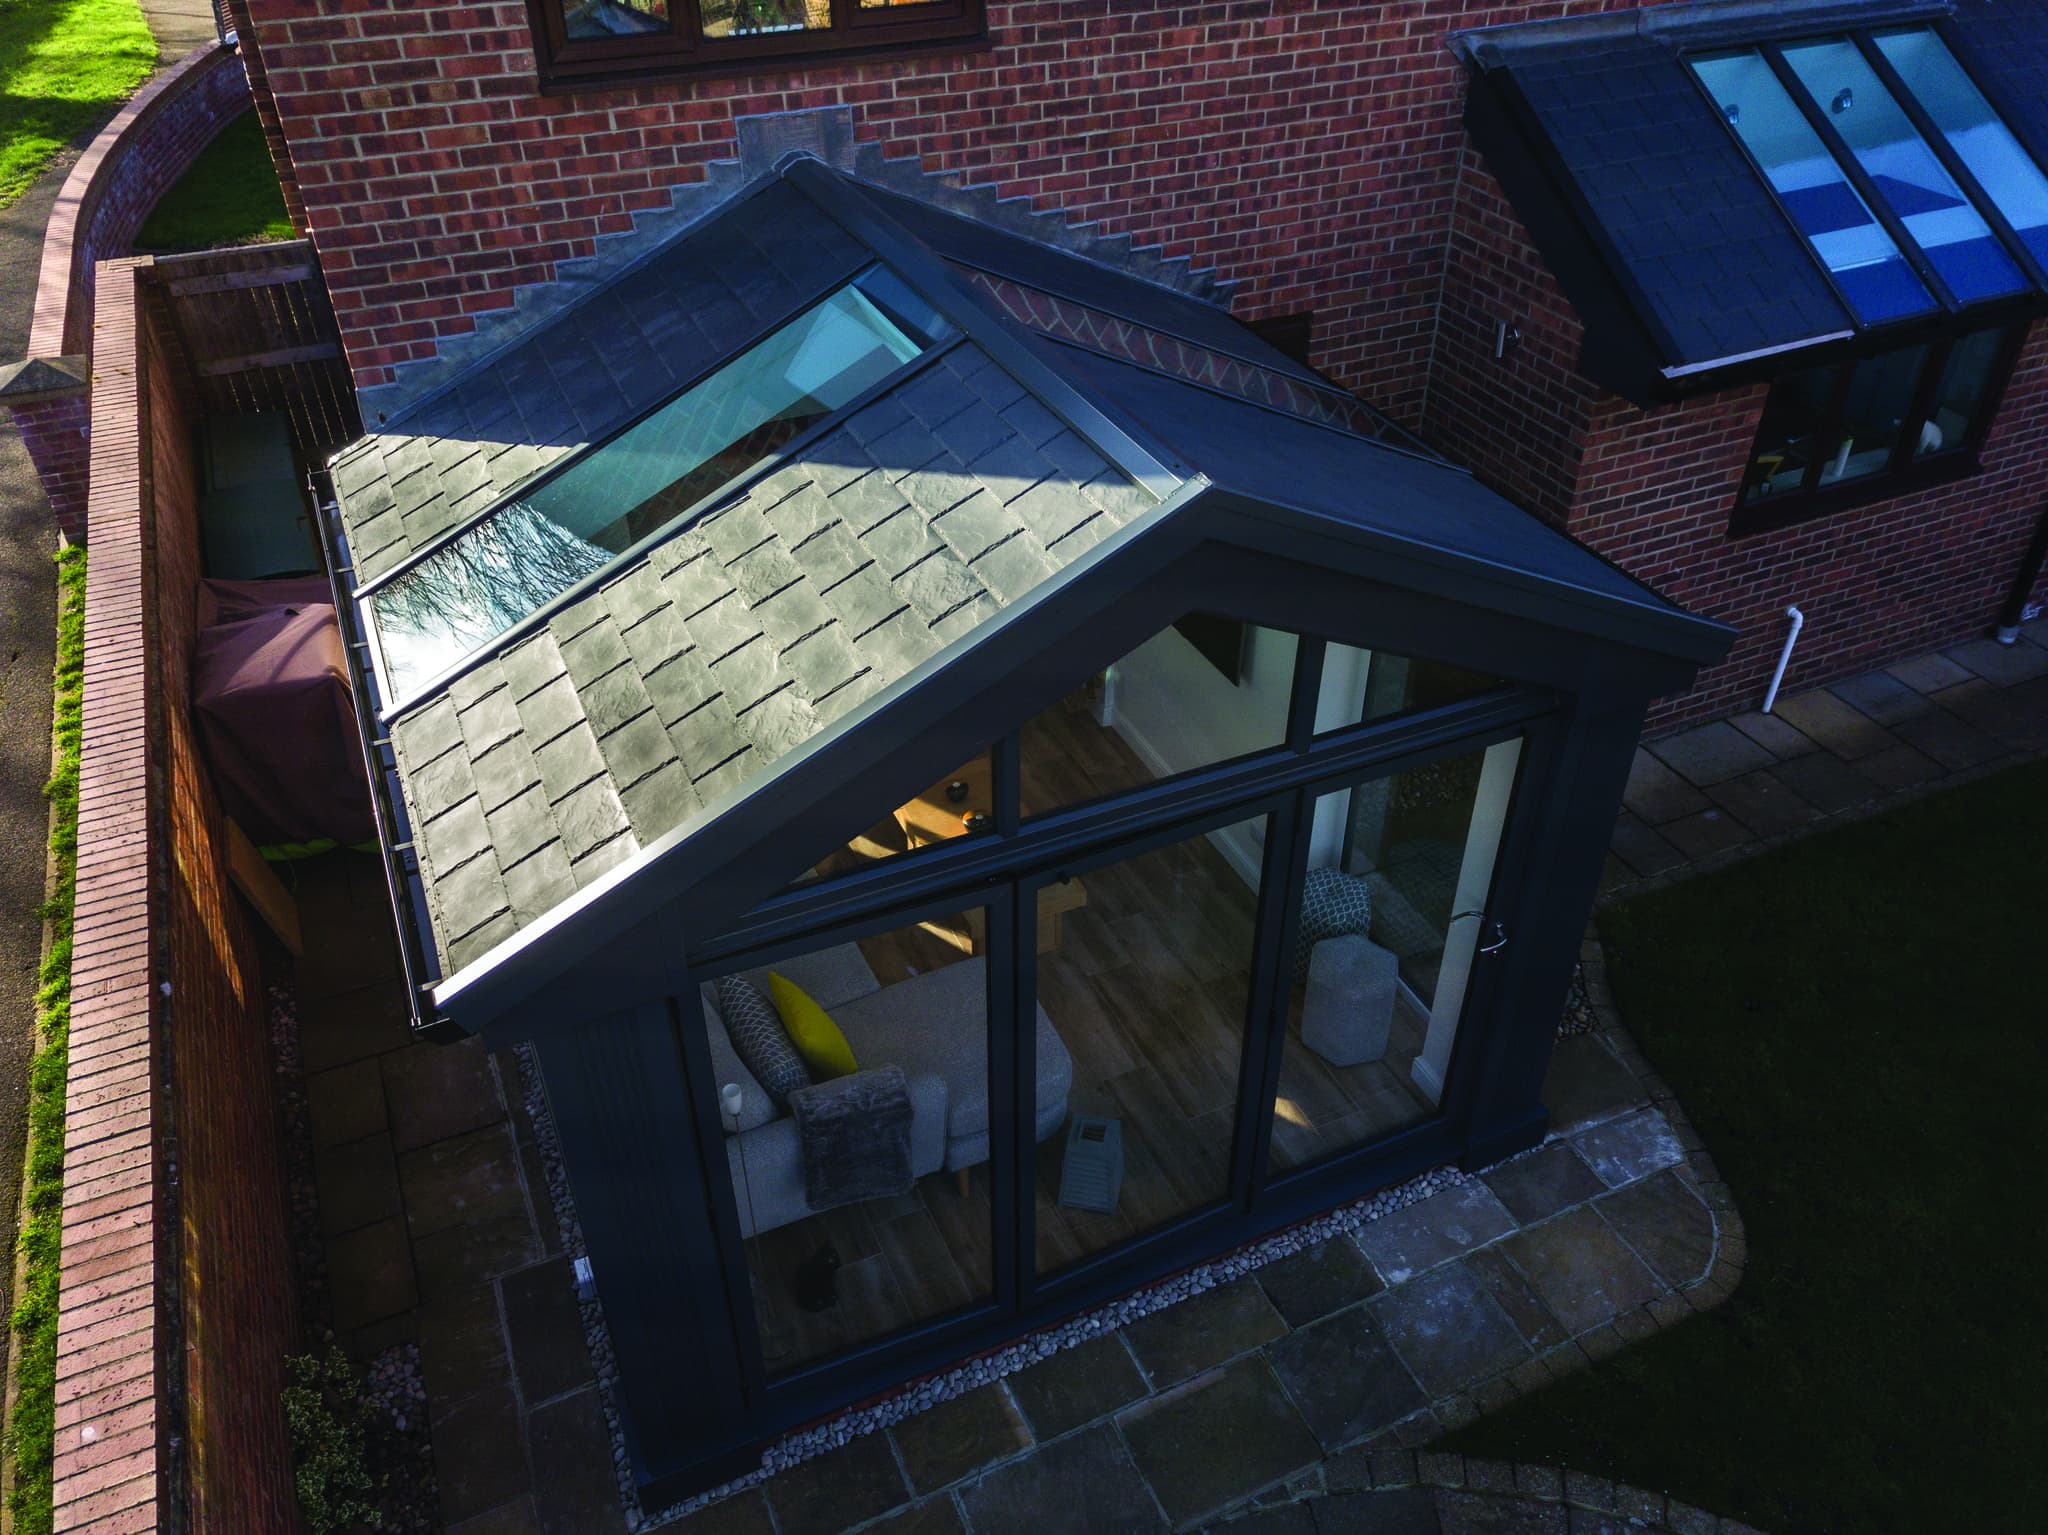 tiled conservatory roofs cost stoke-on-trent